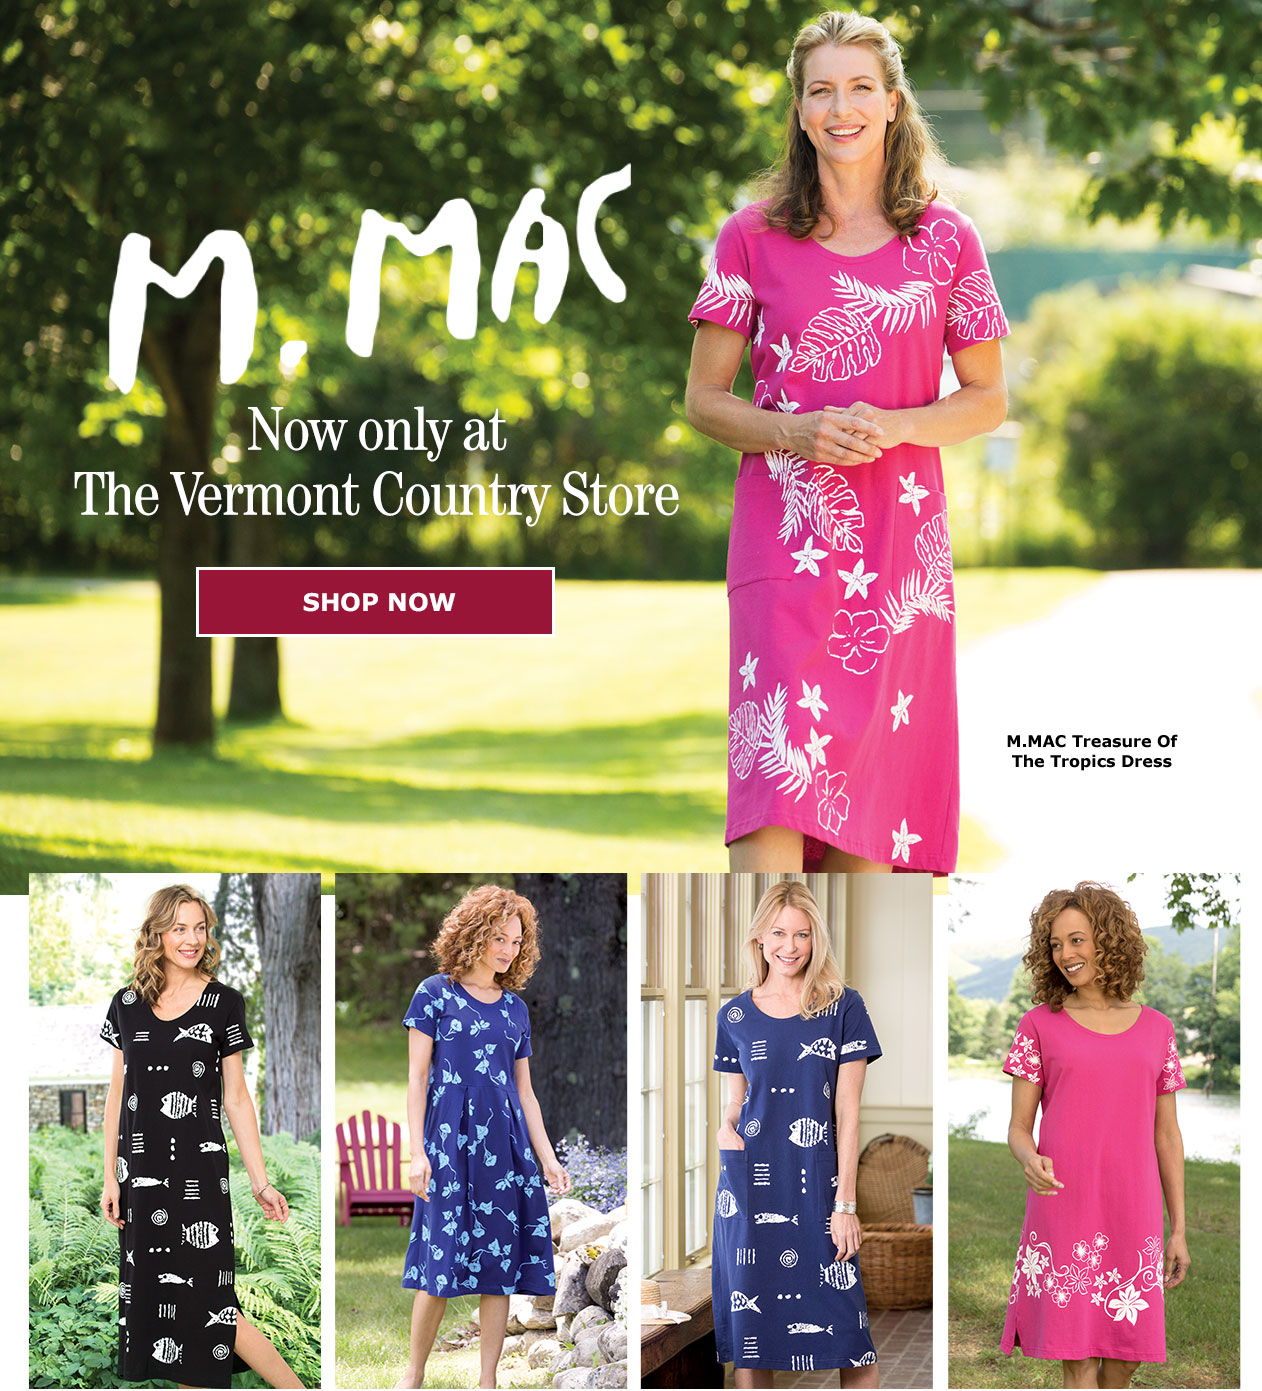 The M.MAC Collection at The Vermont Country Store